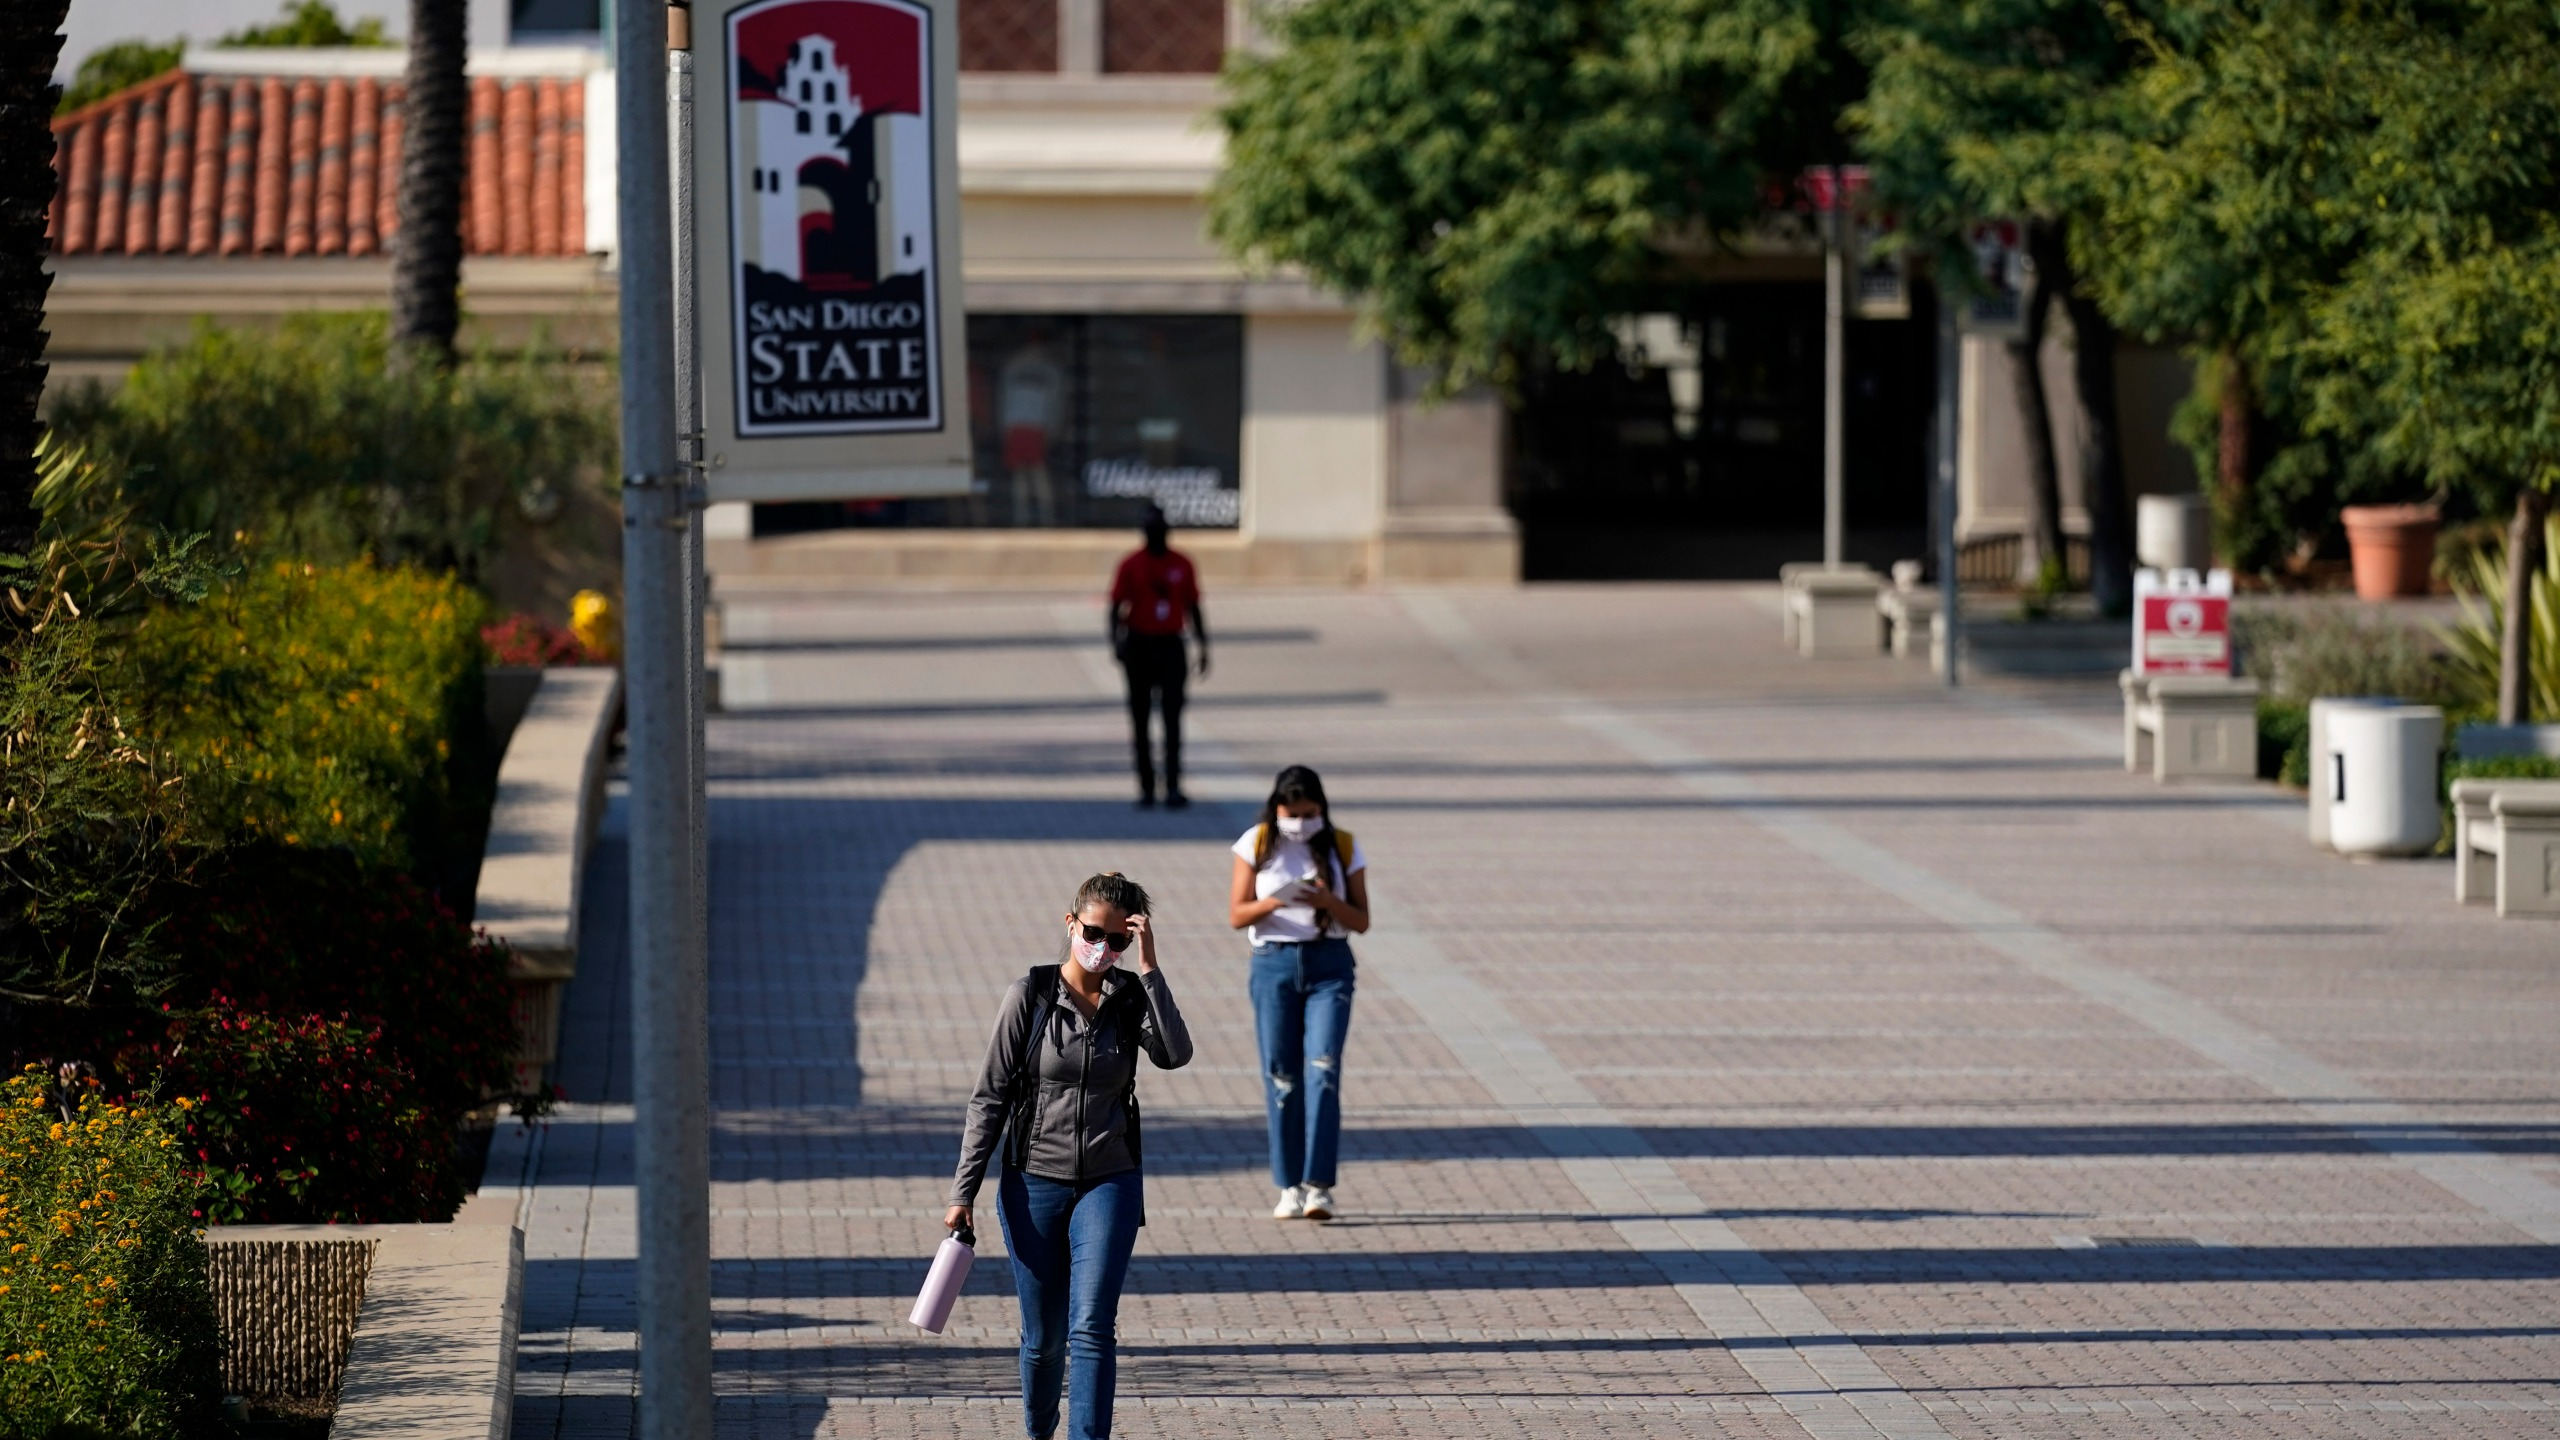 People walk on campus at San Diego State University on Sept. 2, 2020. (Gregory Bull/Associated Press)